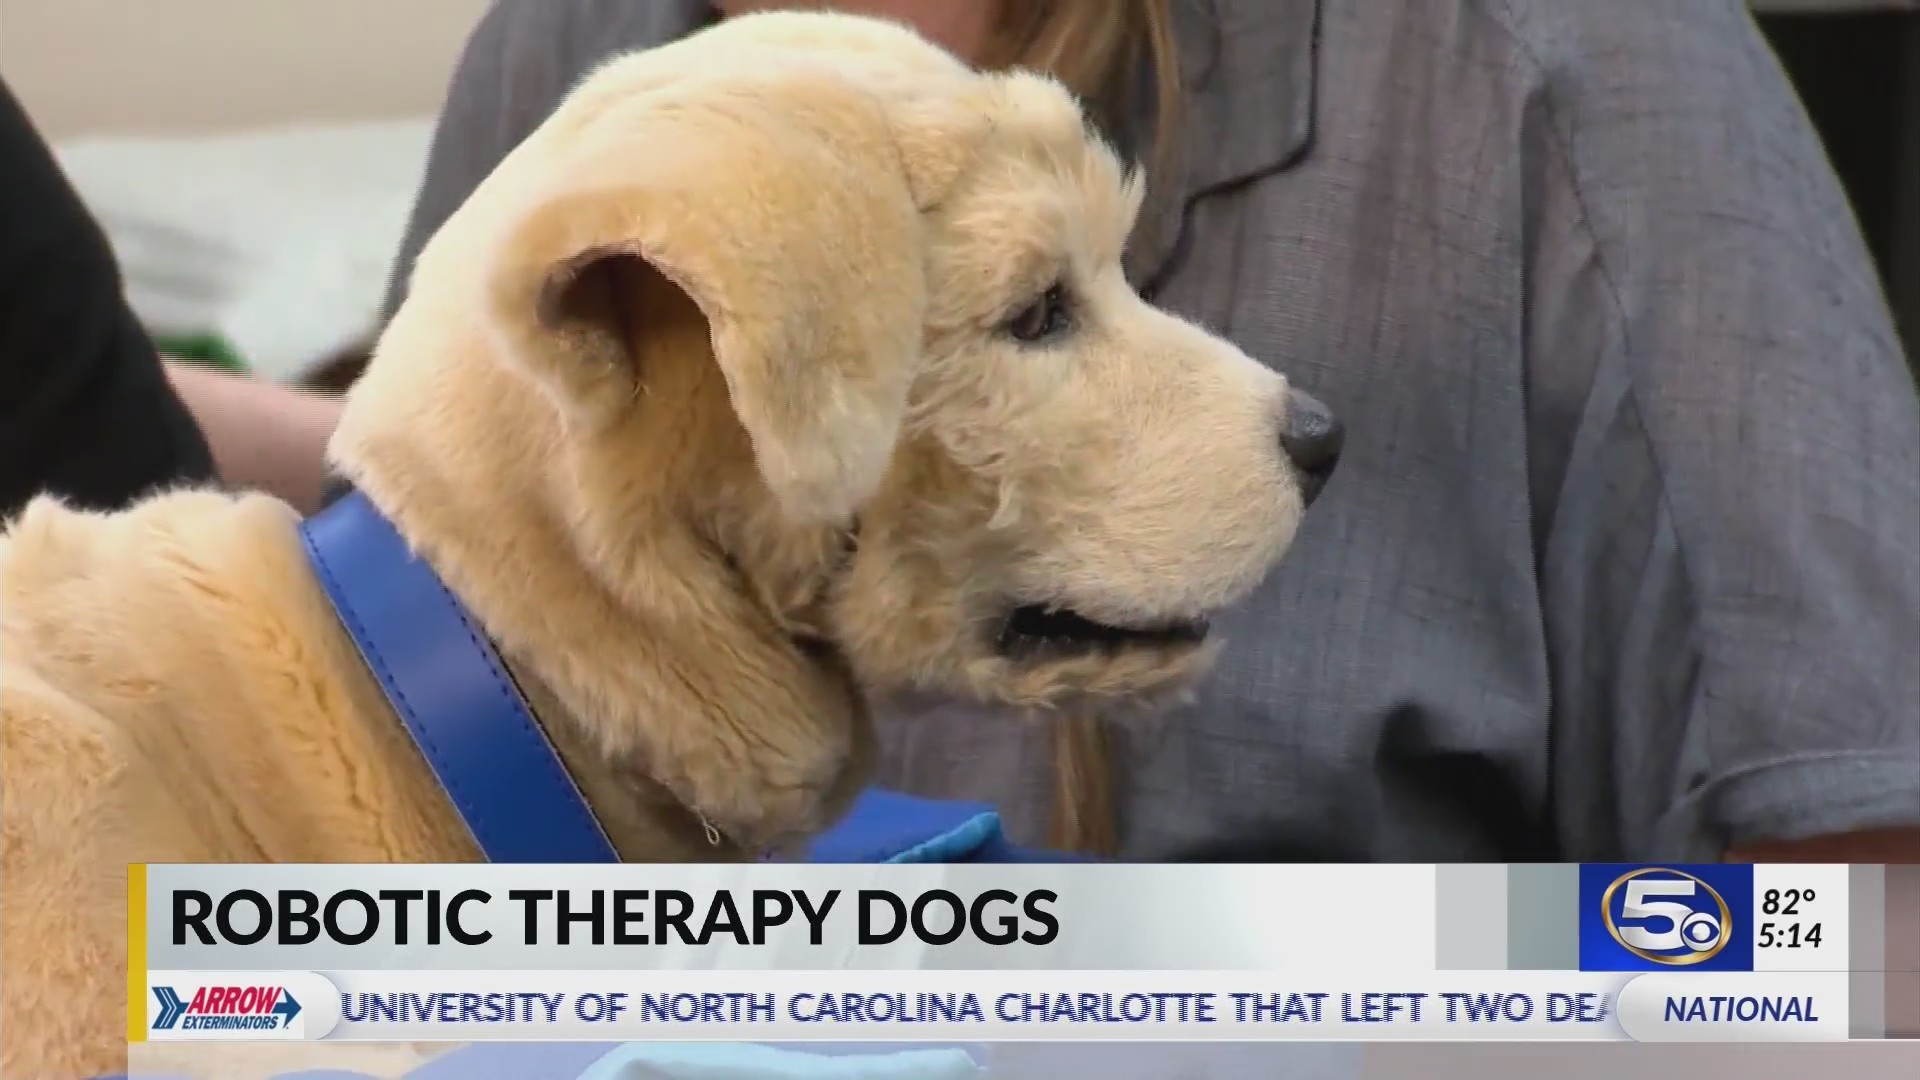 VIDEO: Robo Therapy Dogs offer companionship, anxiety relief